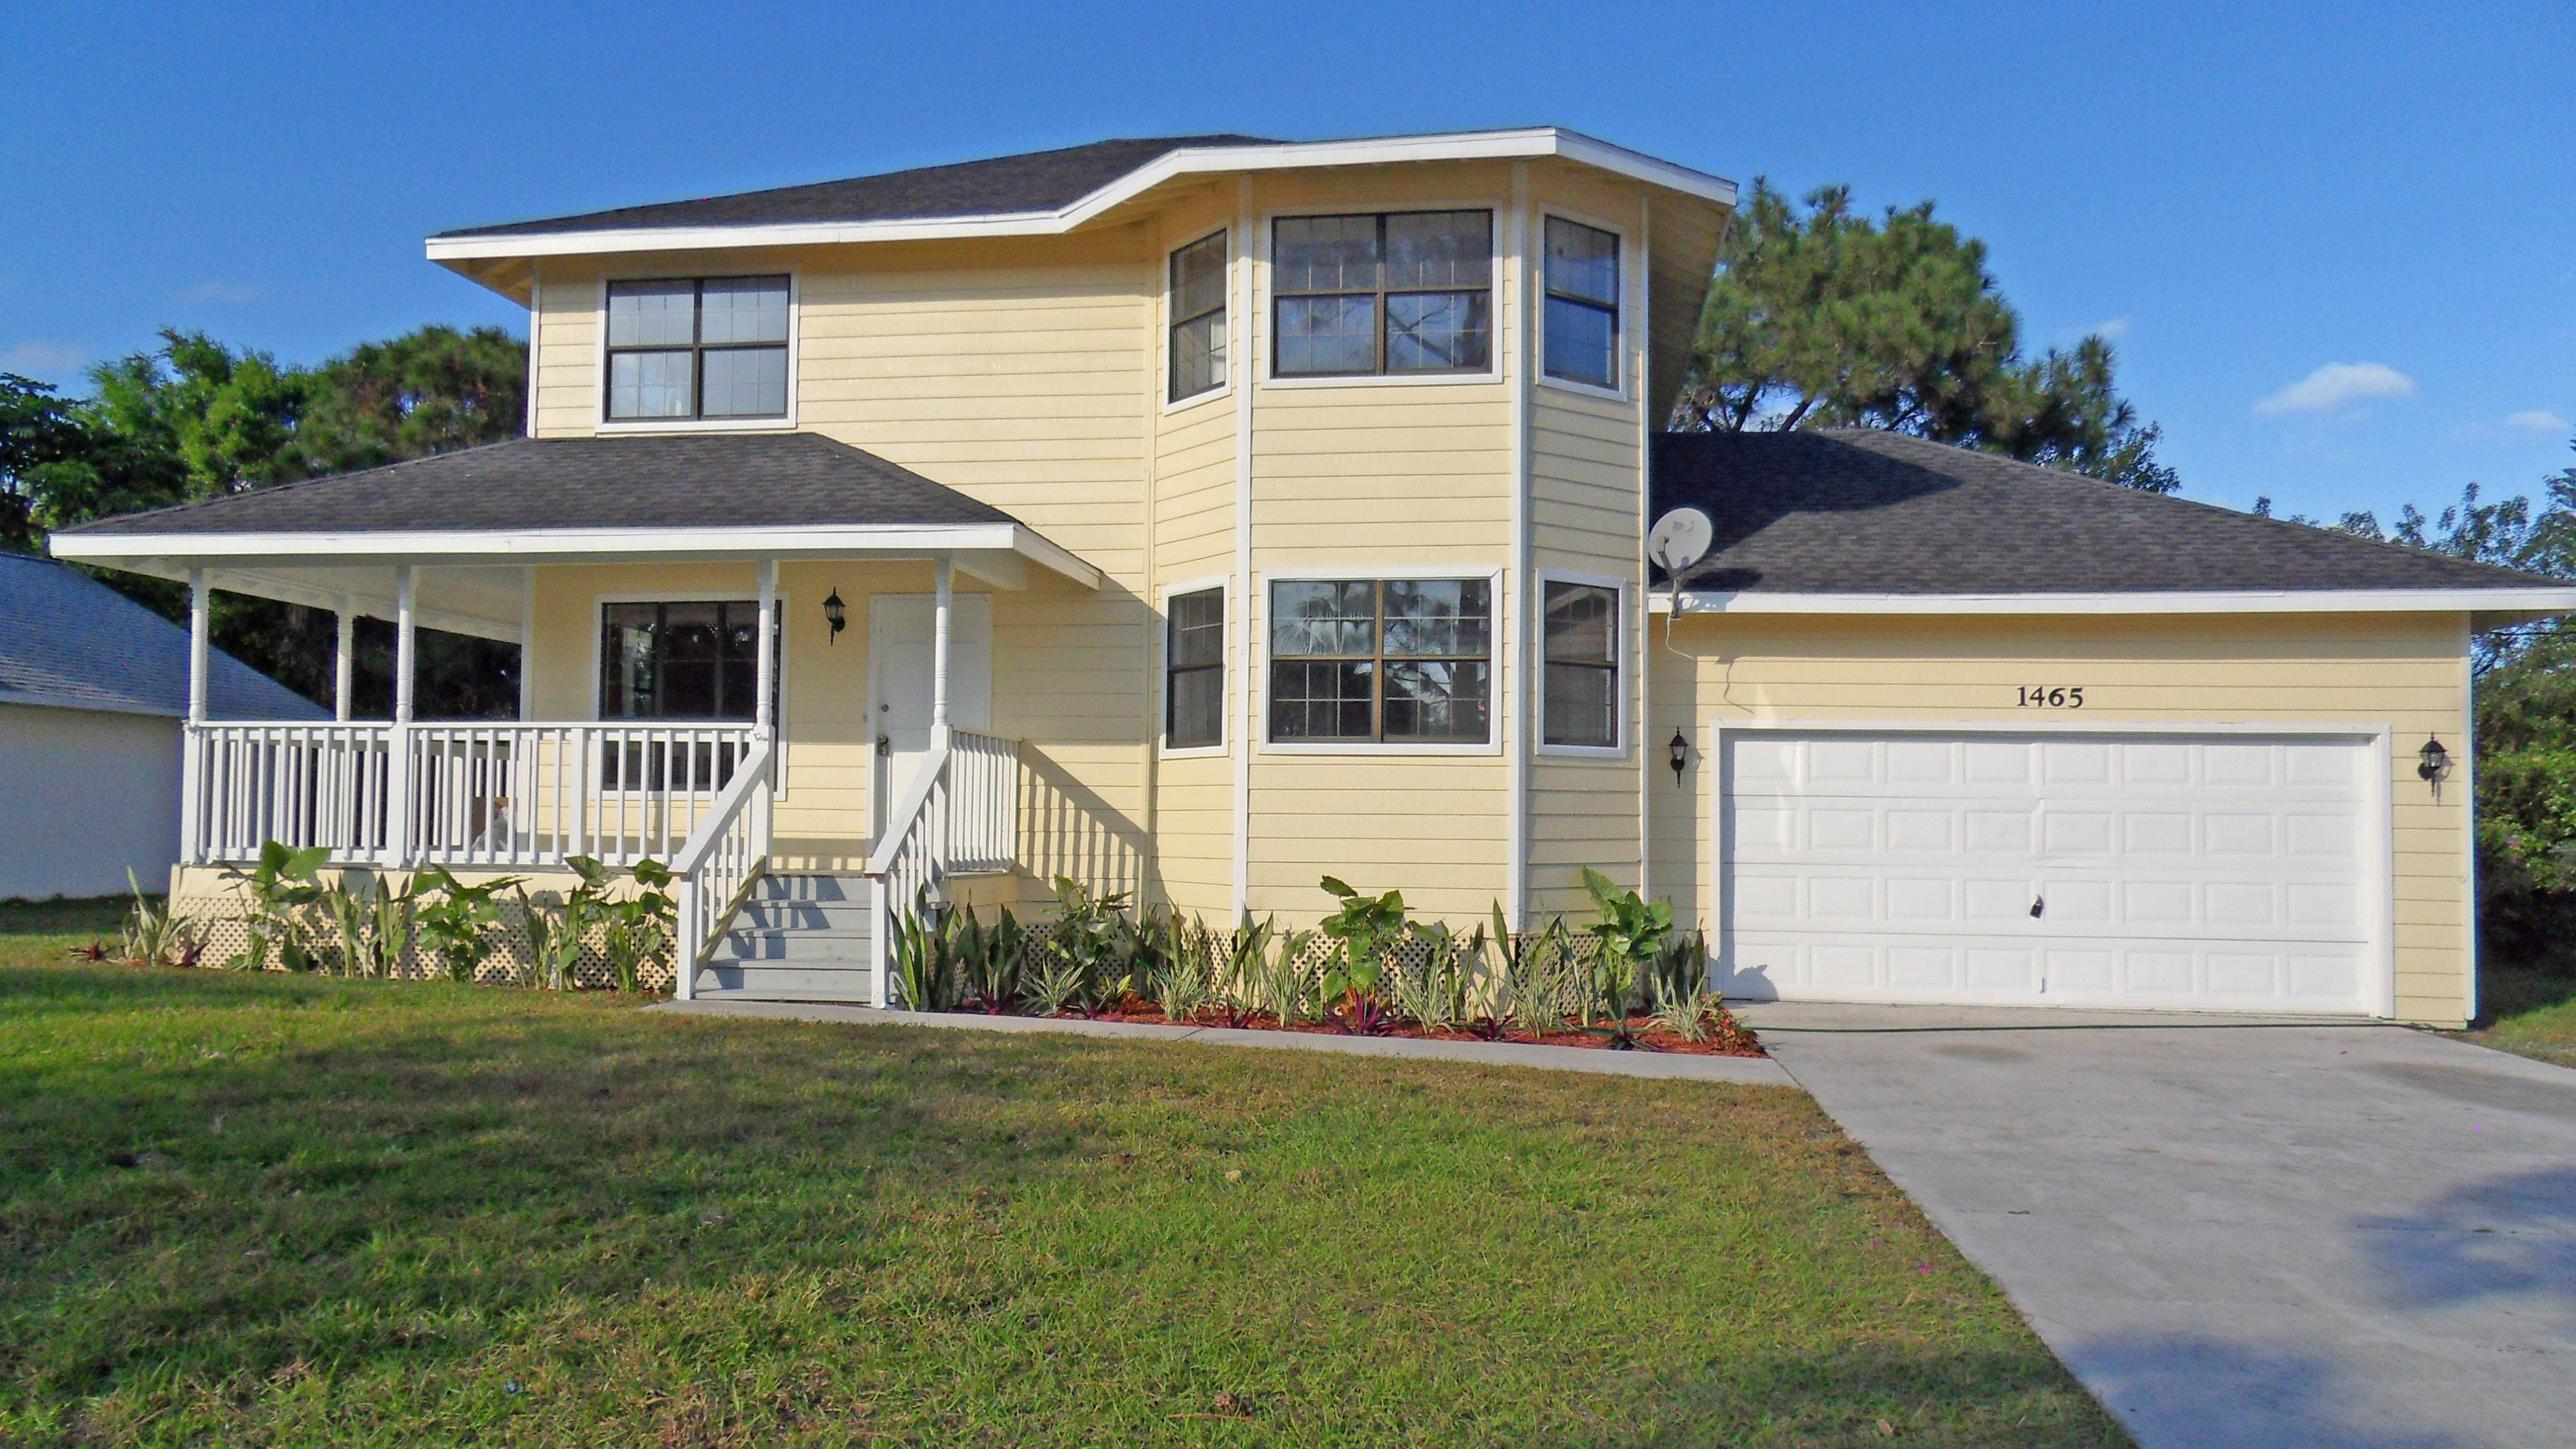 Style port st lucie home price reduced stuart florida real estate